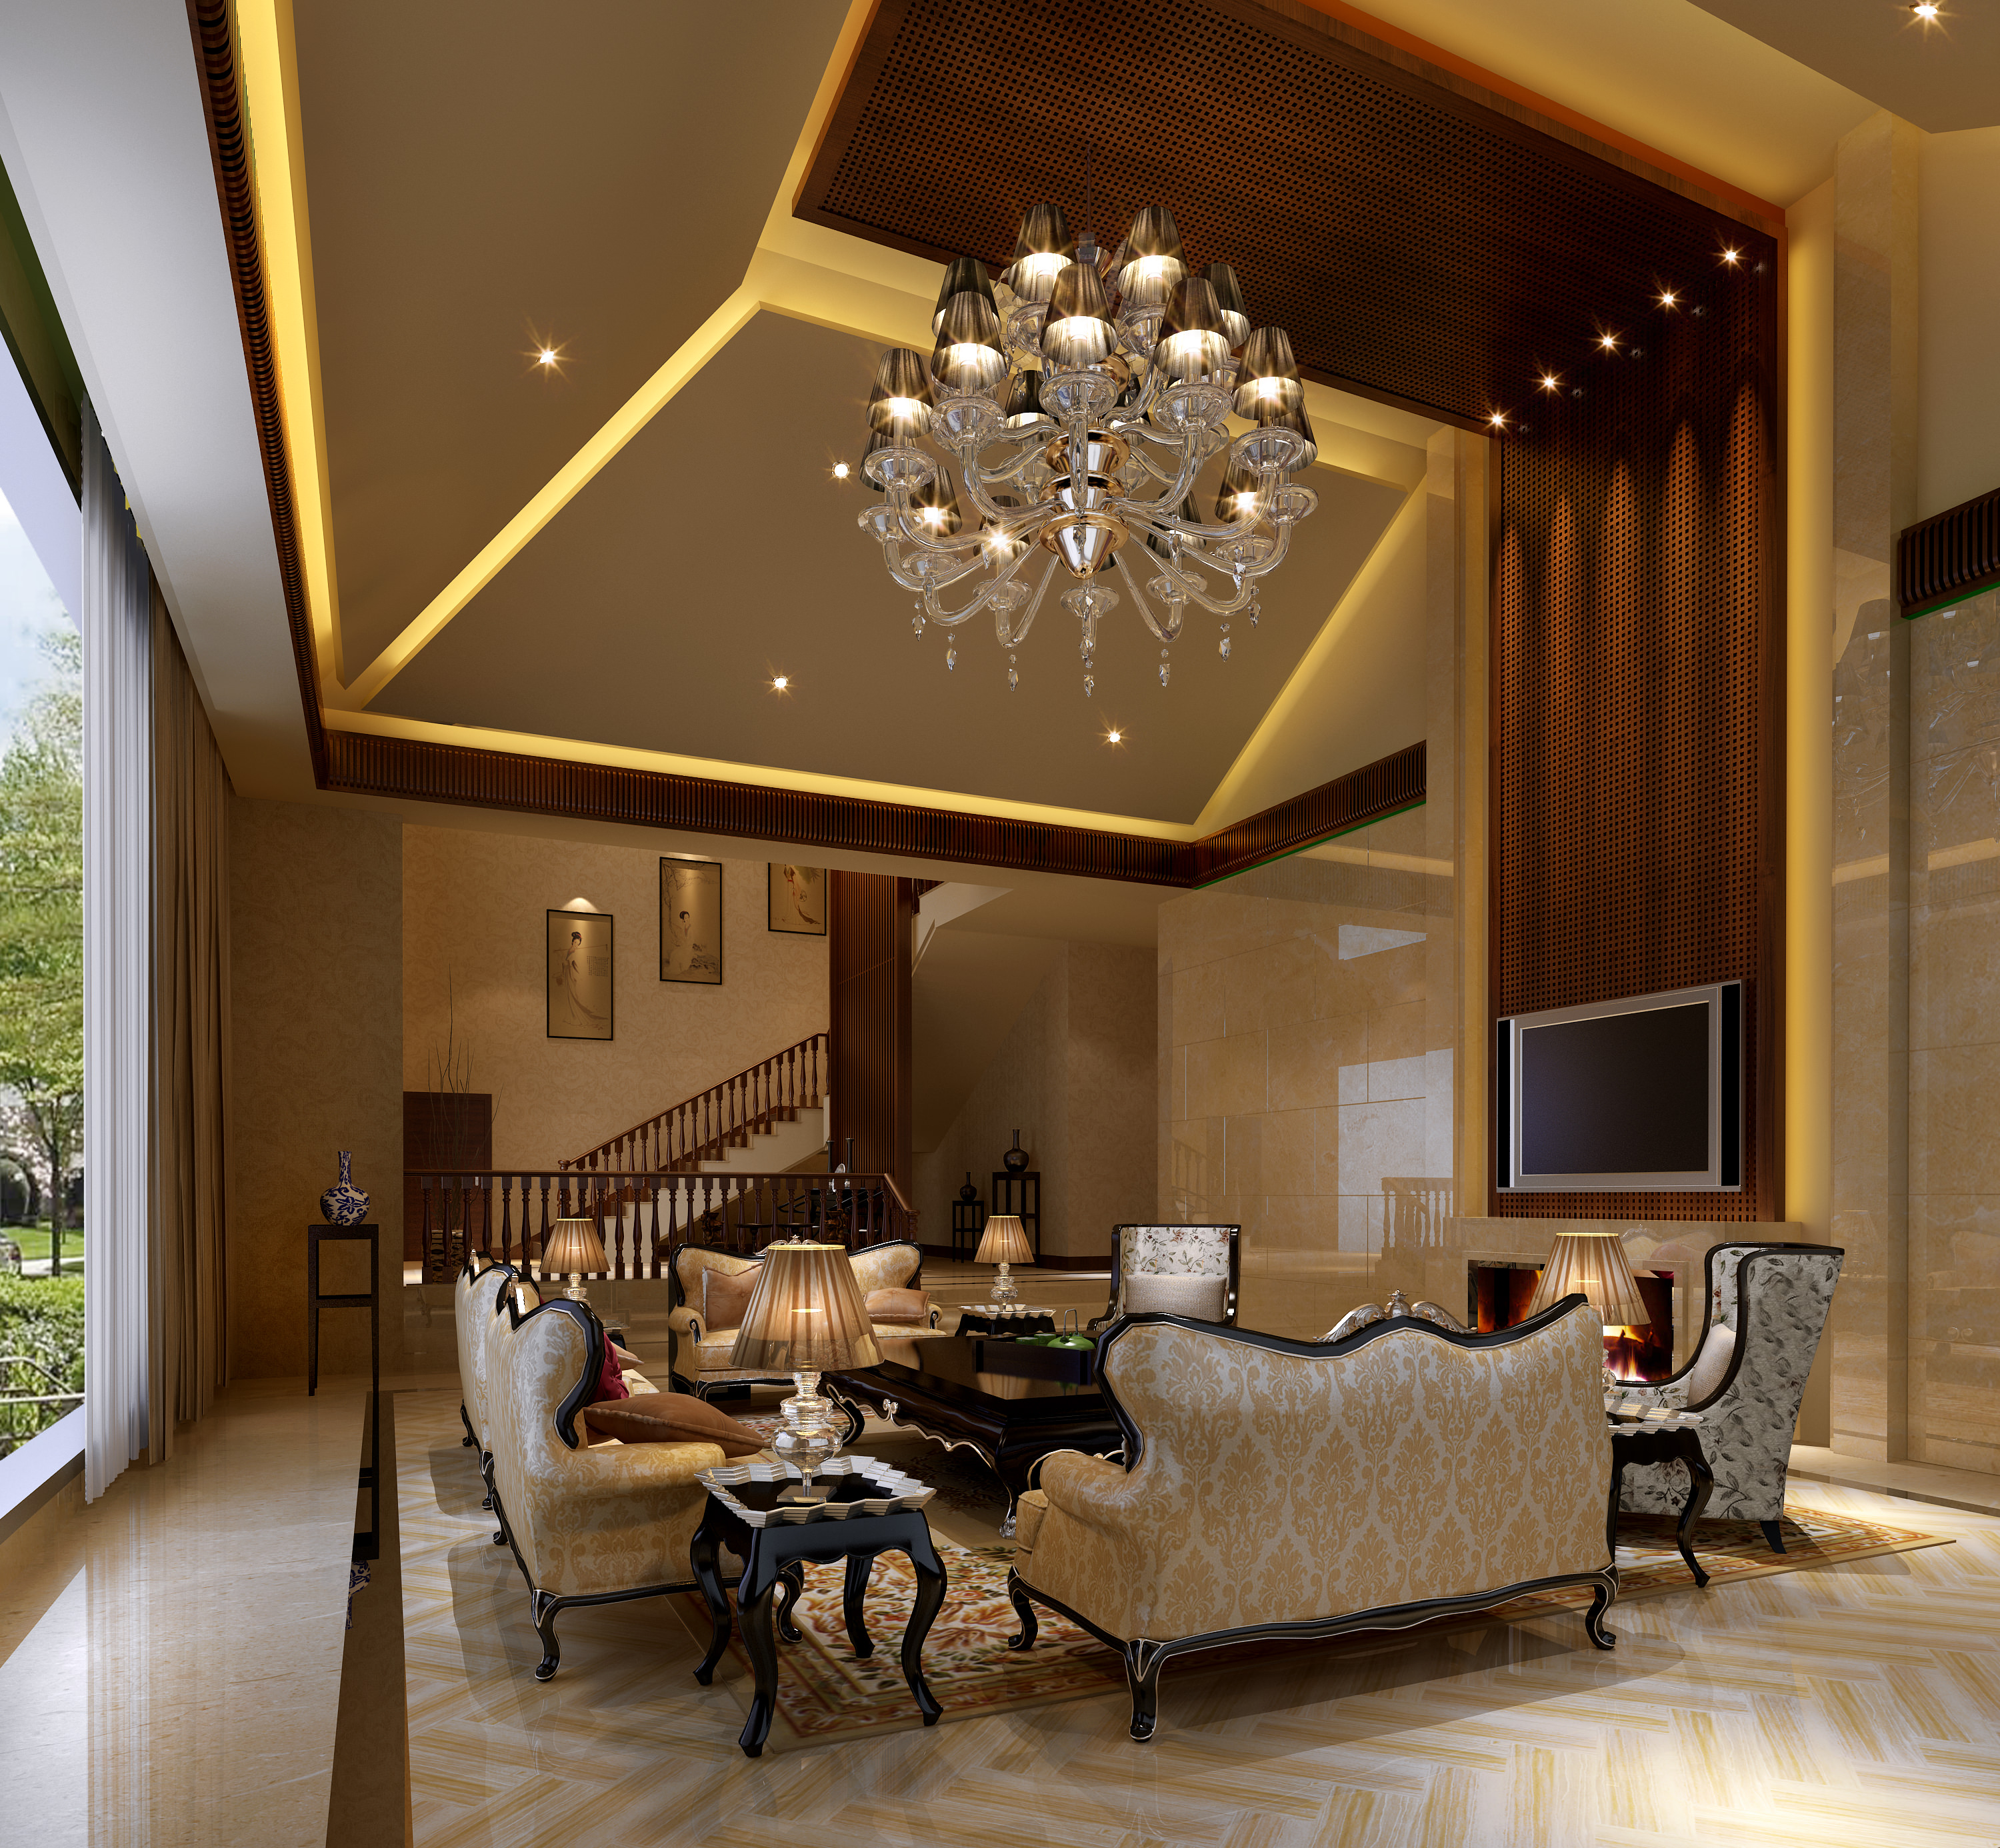 Luxury Living Room 3d Model Max 1 ...